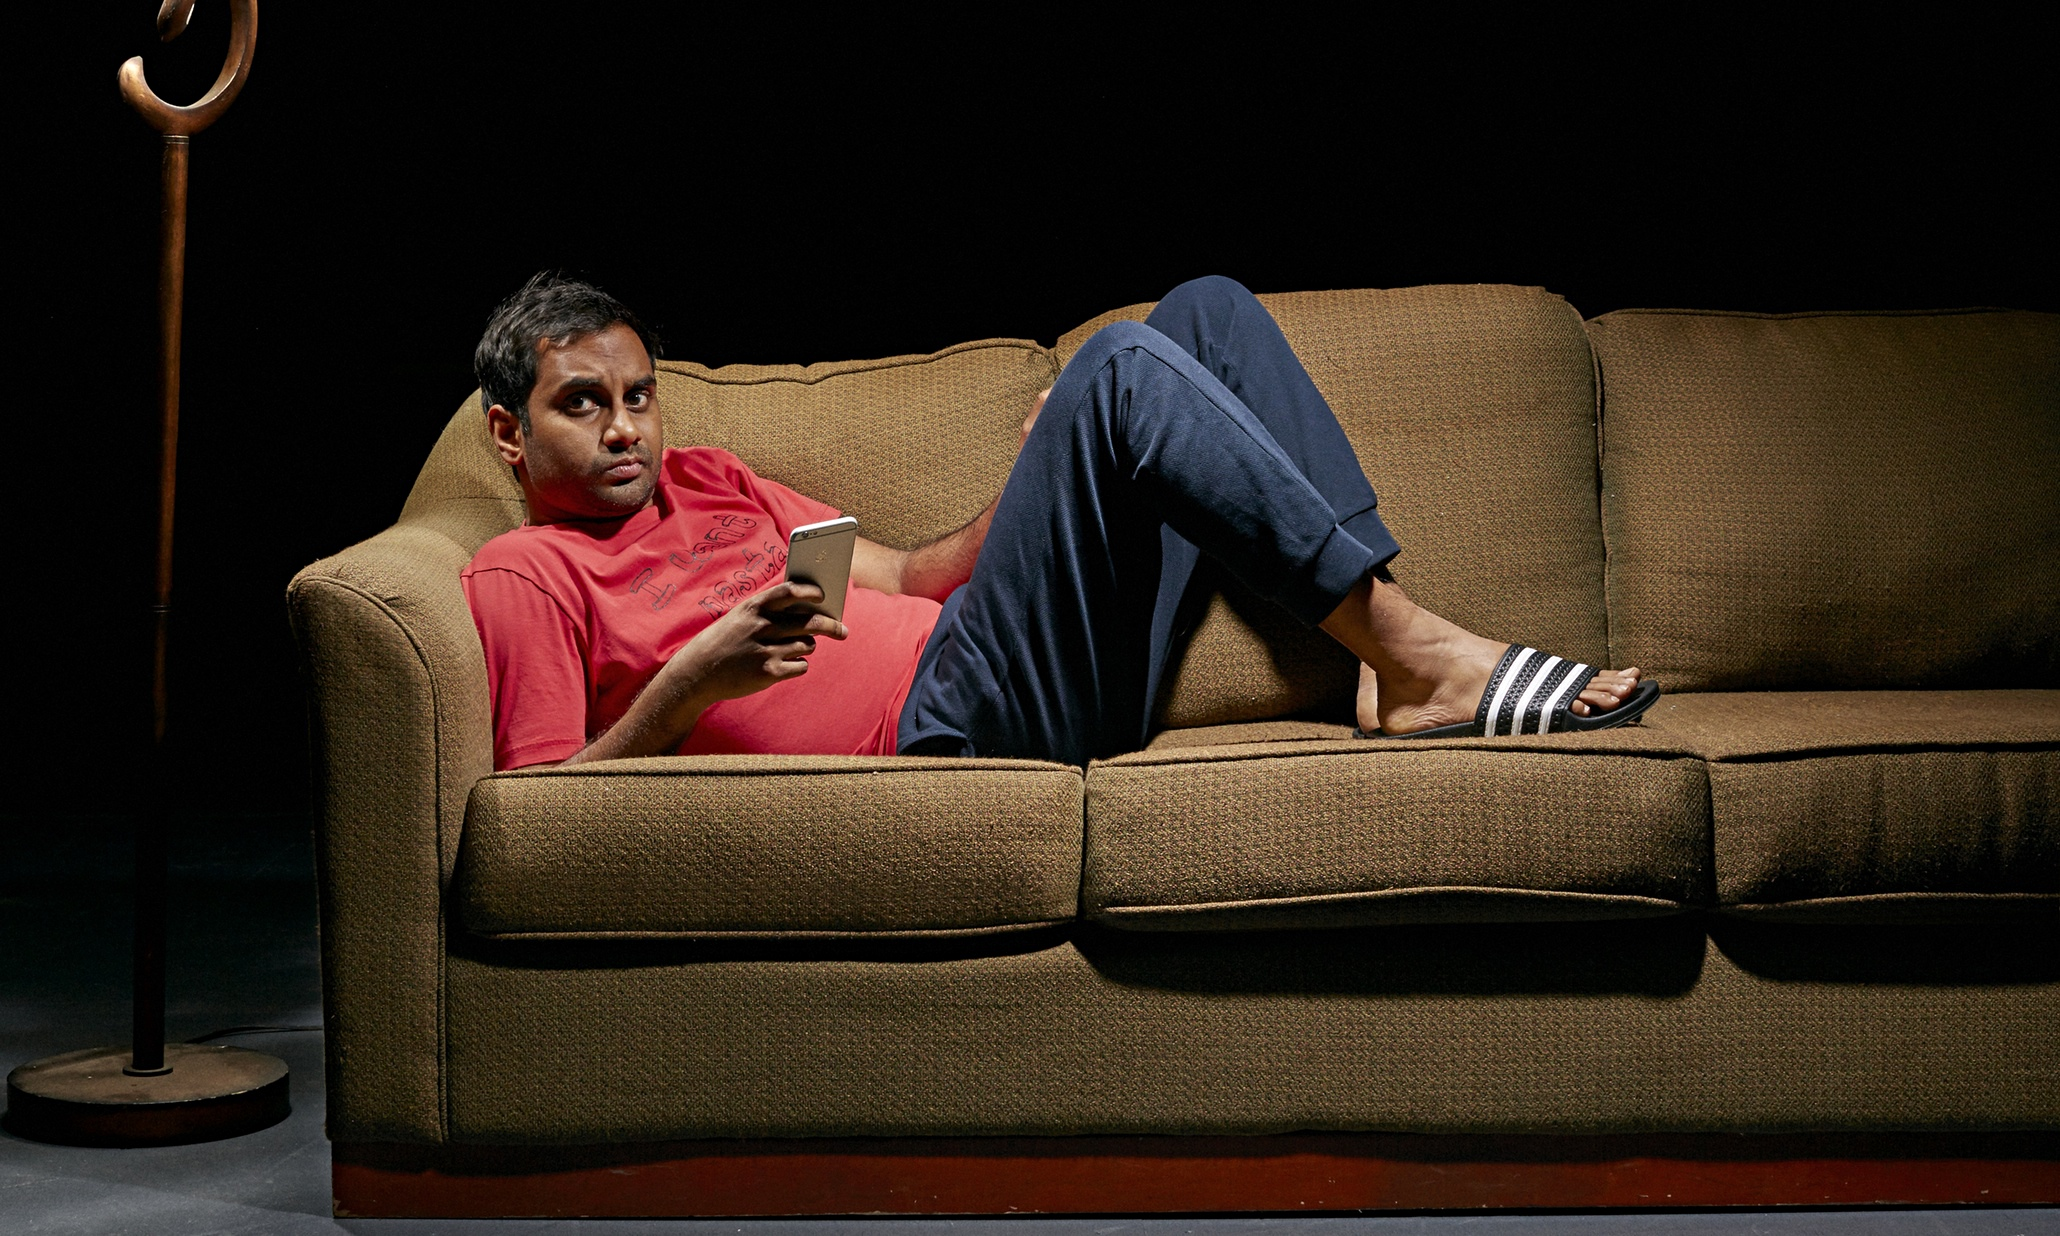 lifeandstyle aziz ansari modern dating extract guide